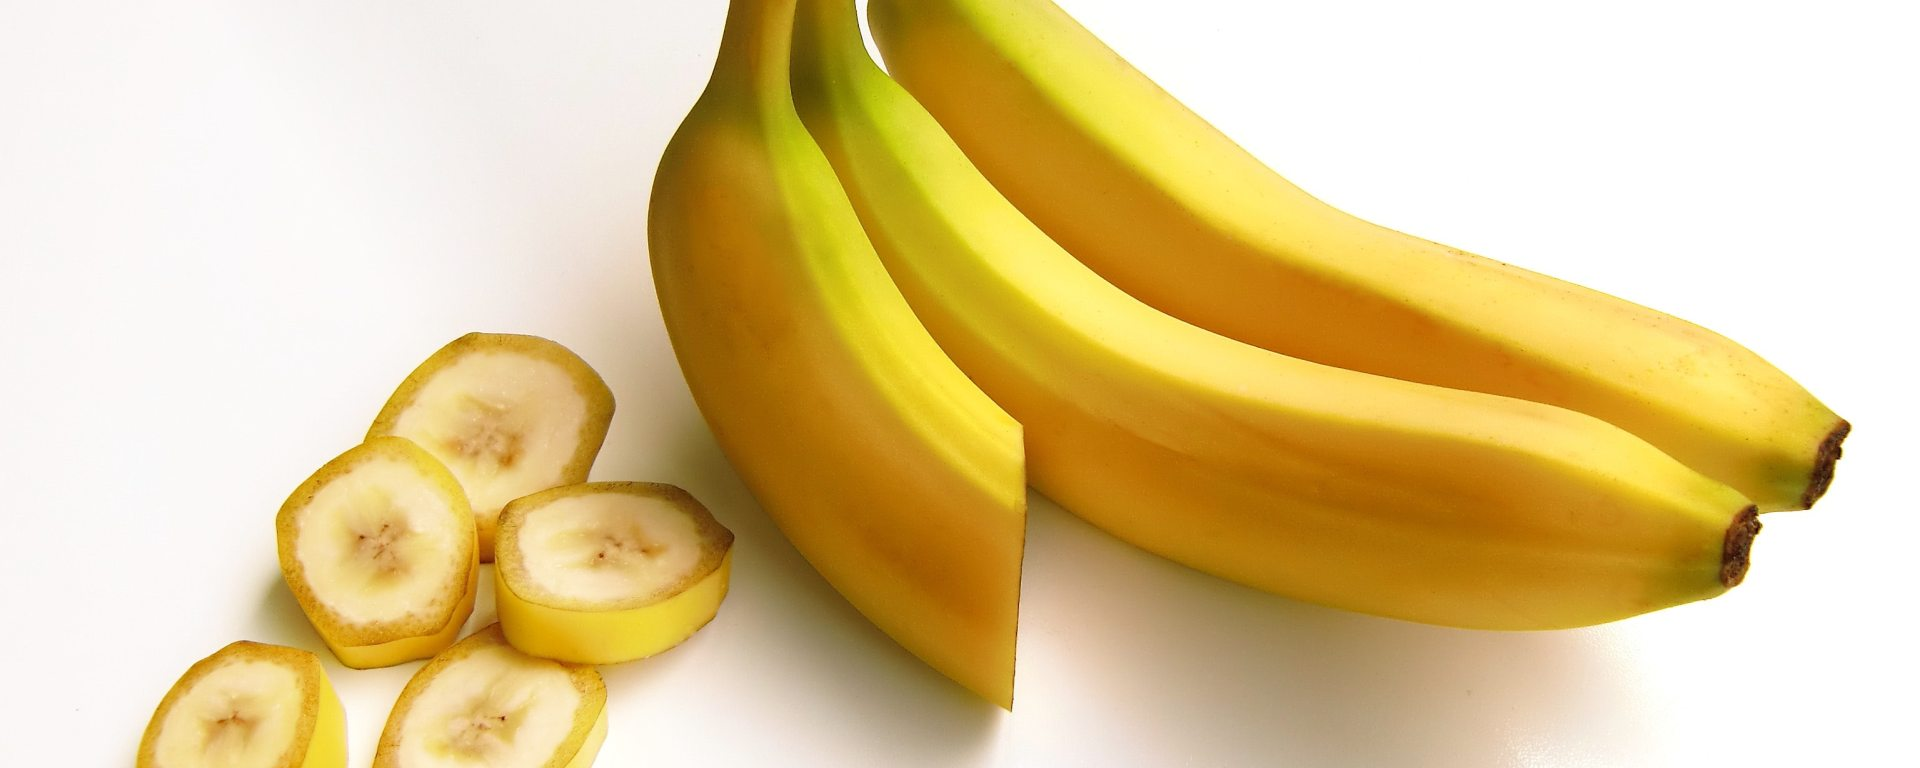 Three bananas next to banana slices